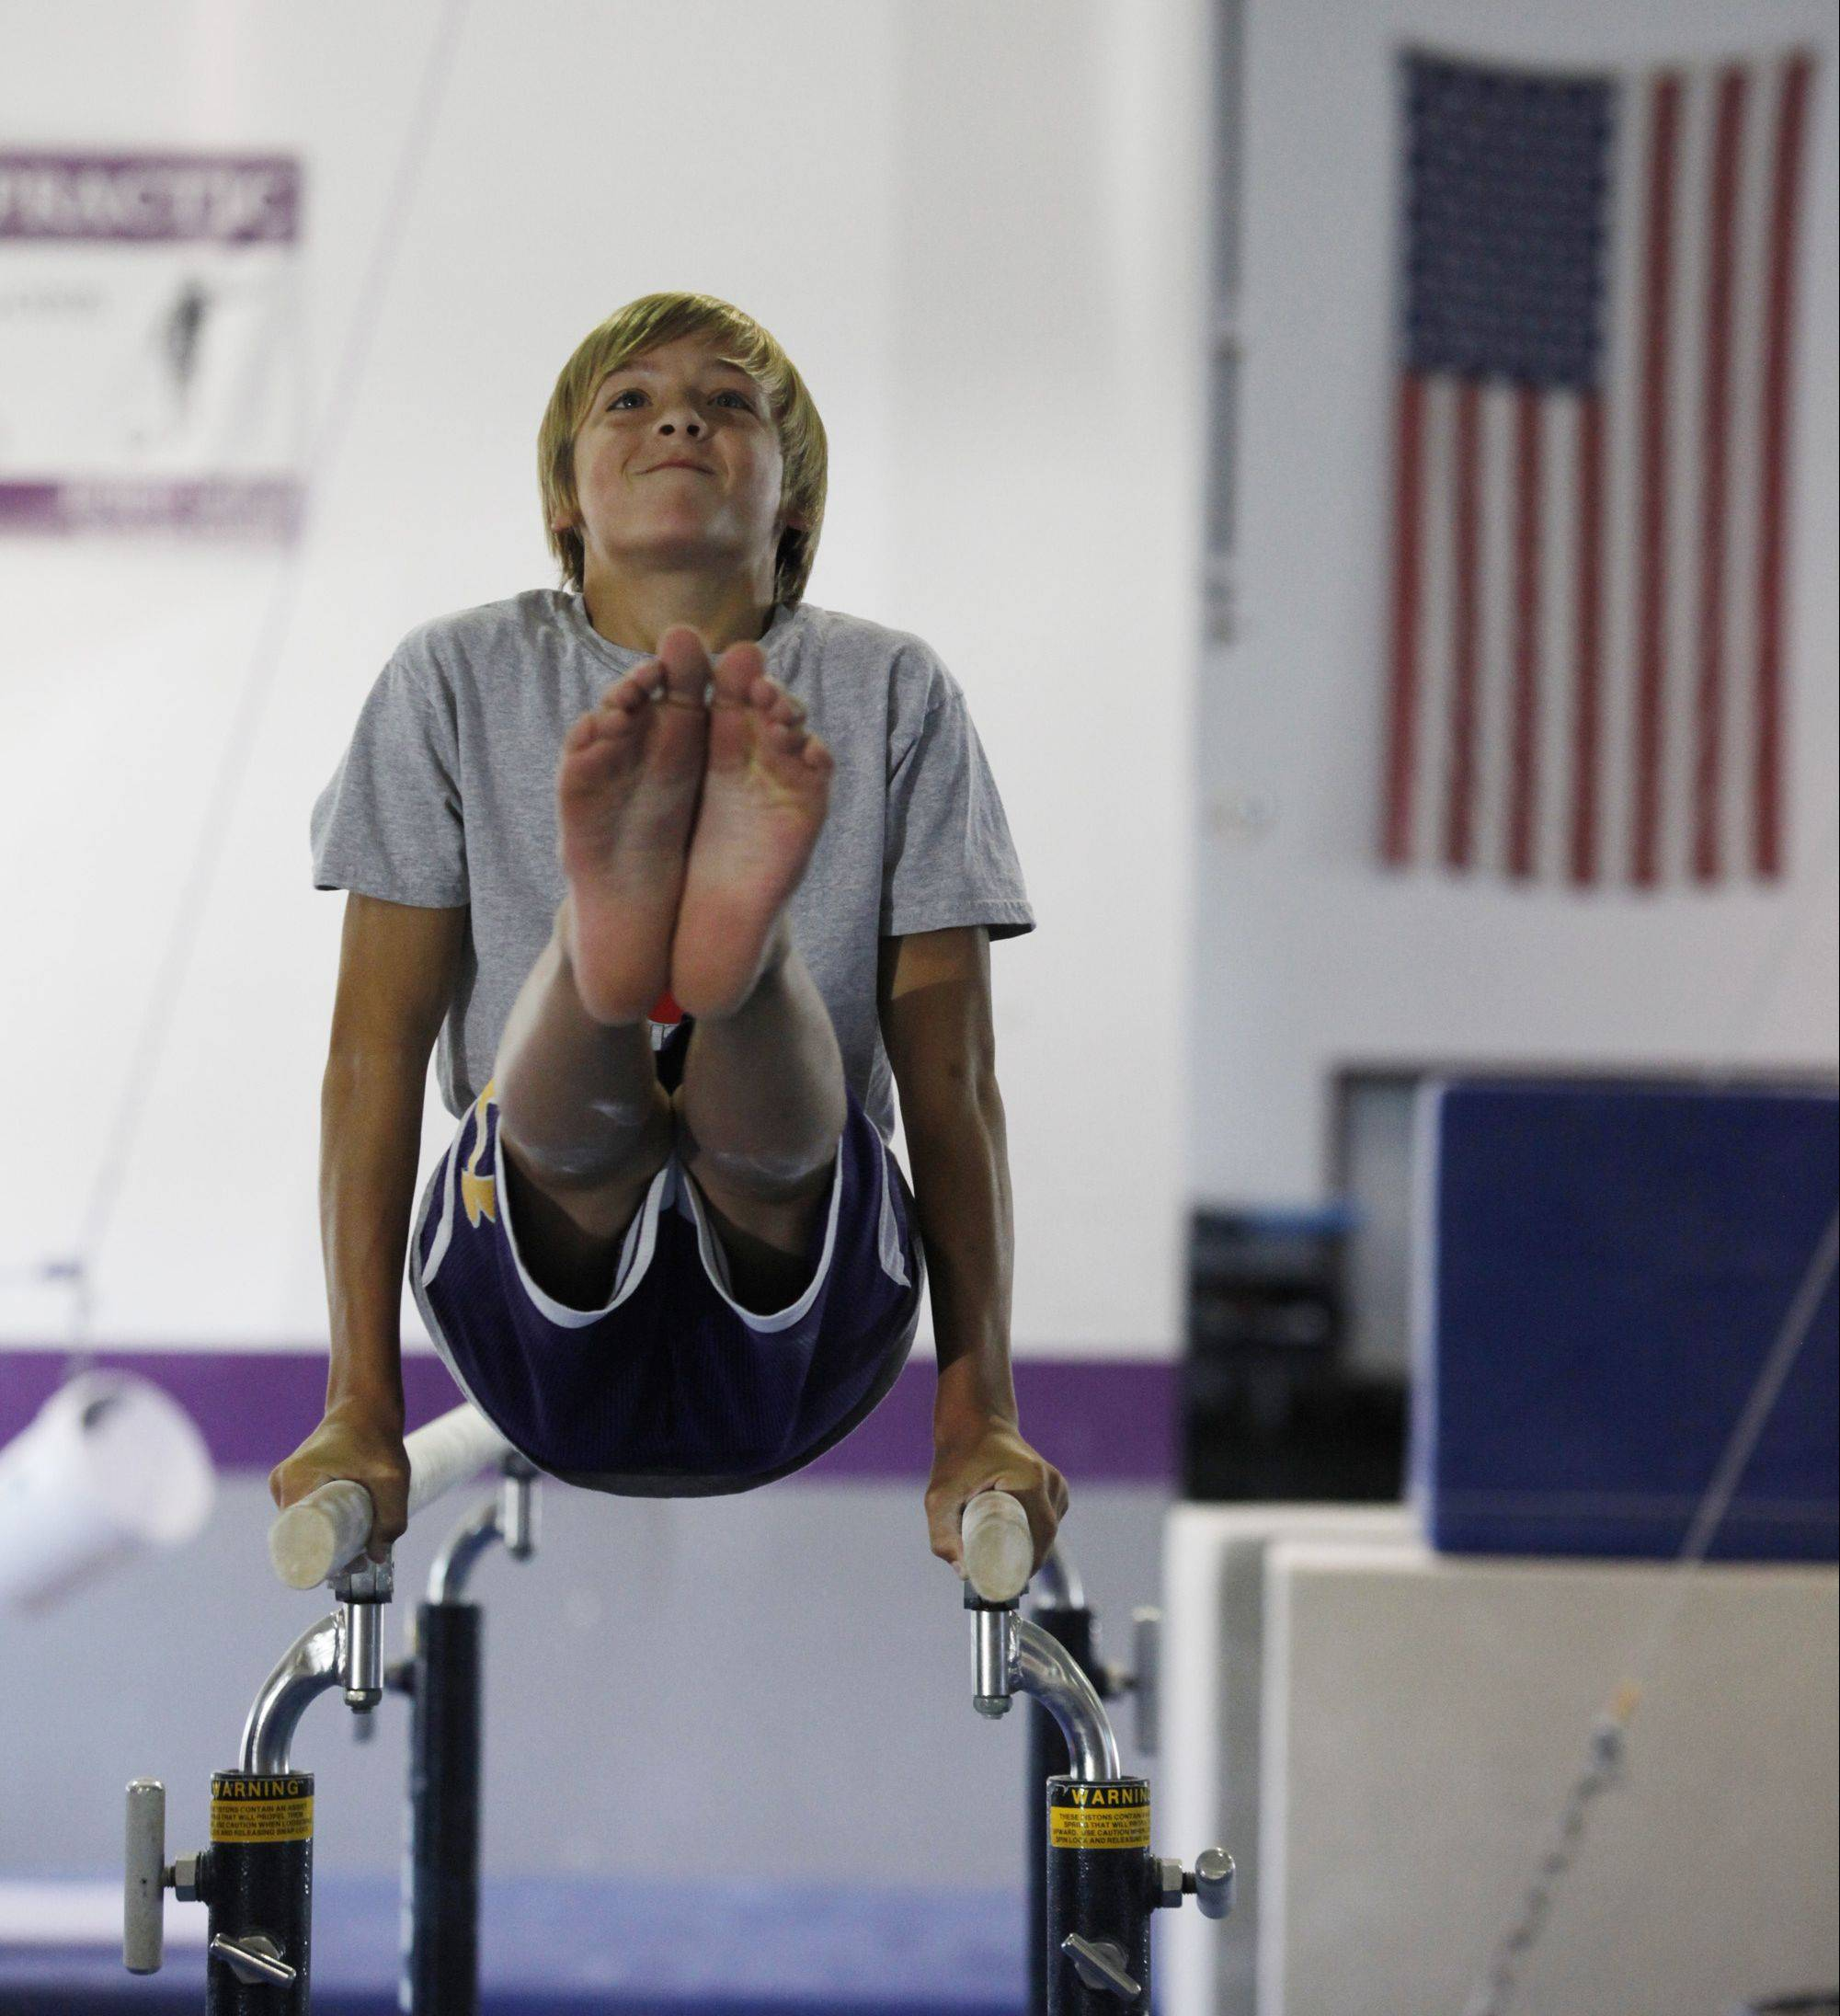 Gymnast Austin Jones, 12, of St. Charles hopes to represent the United States someday at the Olympics. He's been doing gymnastics since he was 4 years old and took the gold medal in the vault in his age and level at the 2013 Junior Olympic Championships held in Portland, Ore.